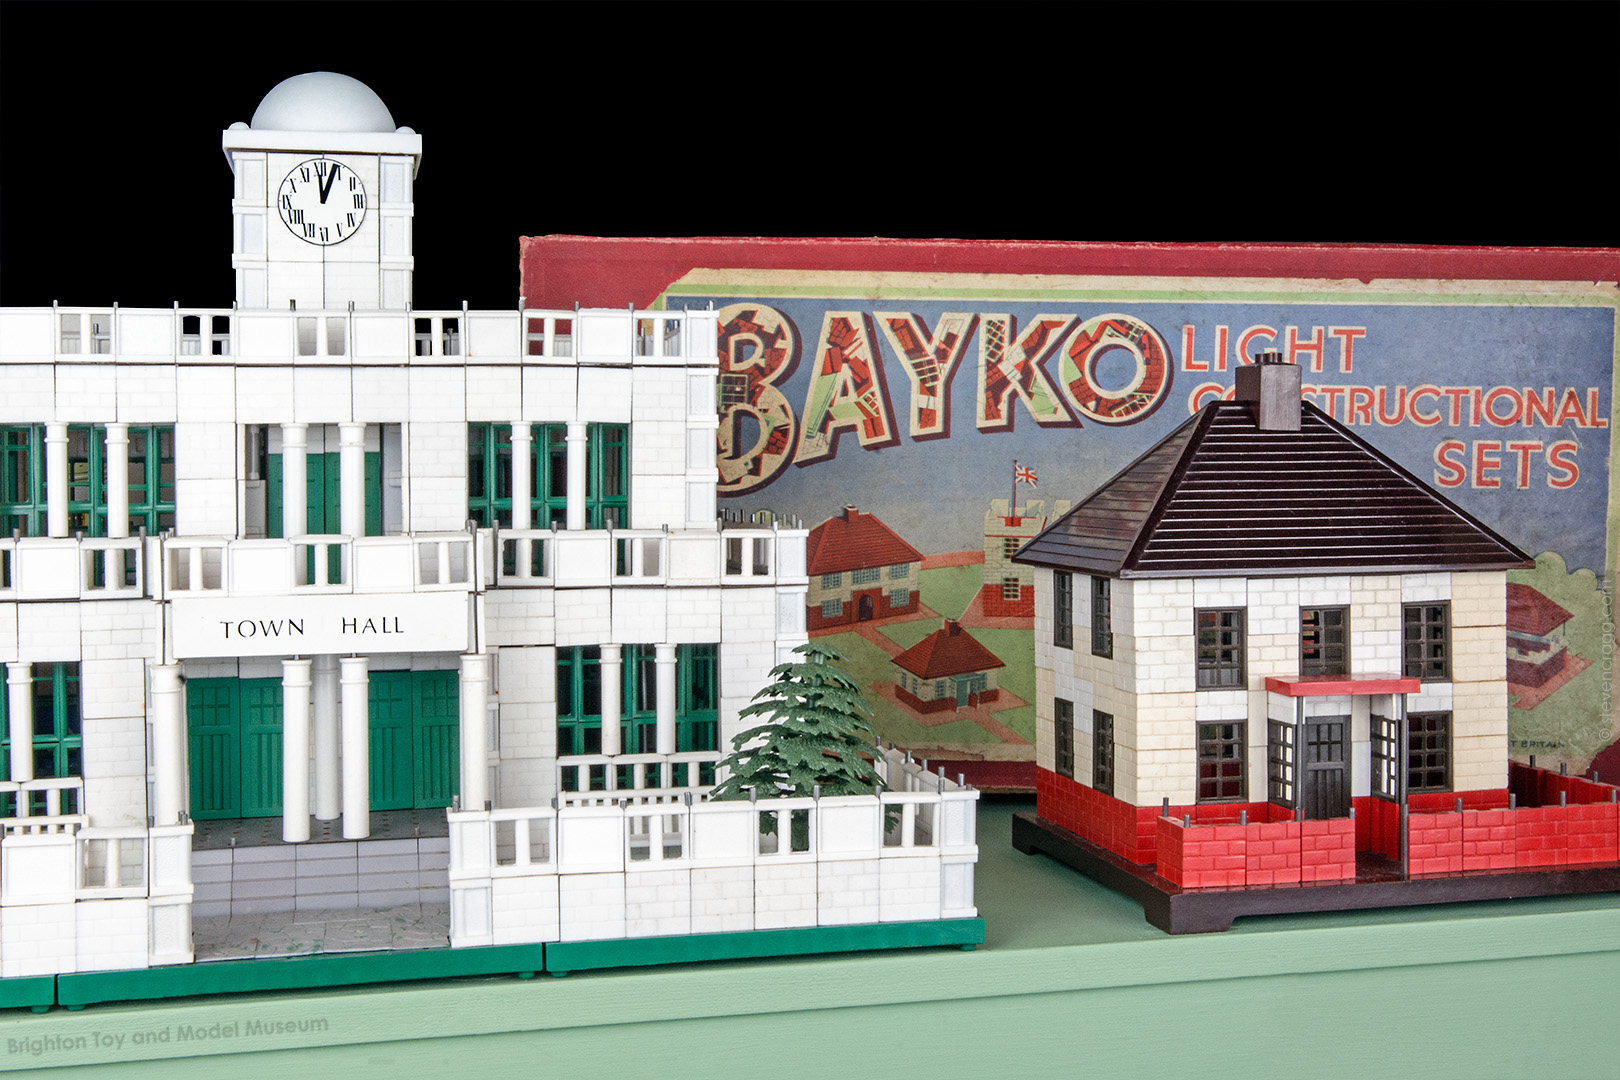 Town hall and house built out of Bayko with a vintage Bayko box sitting behind